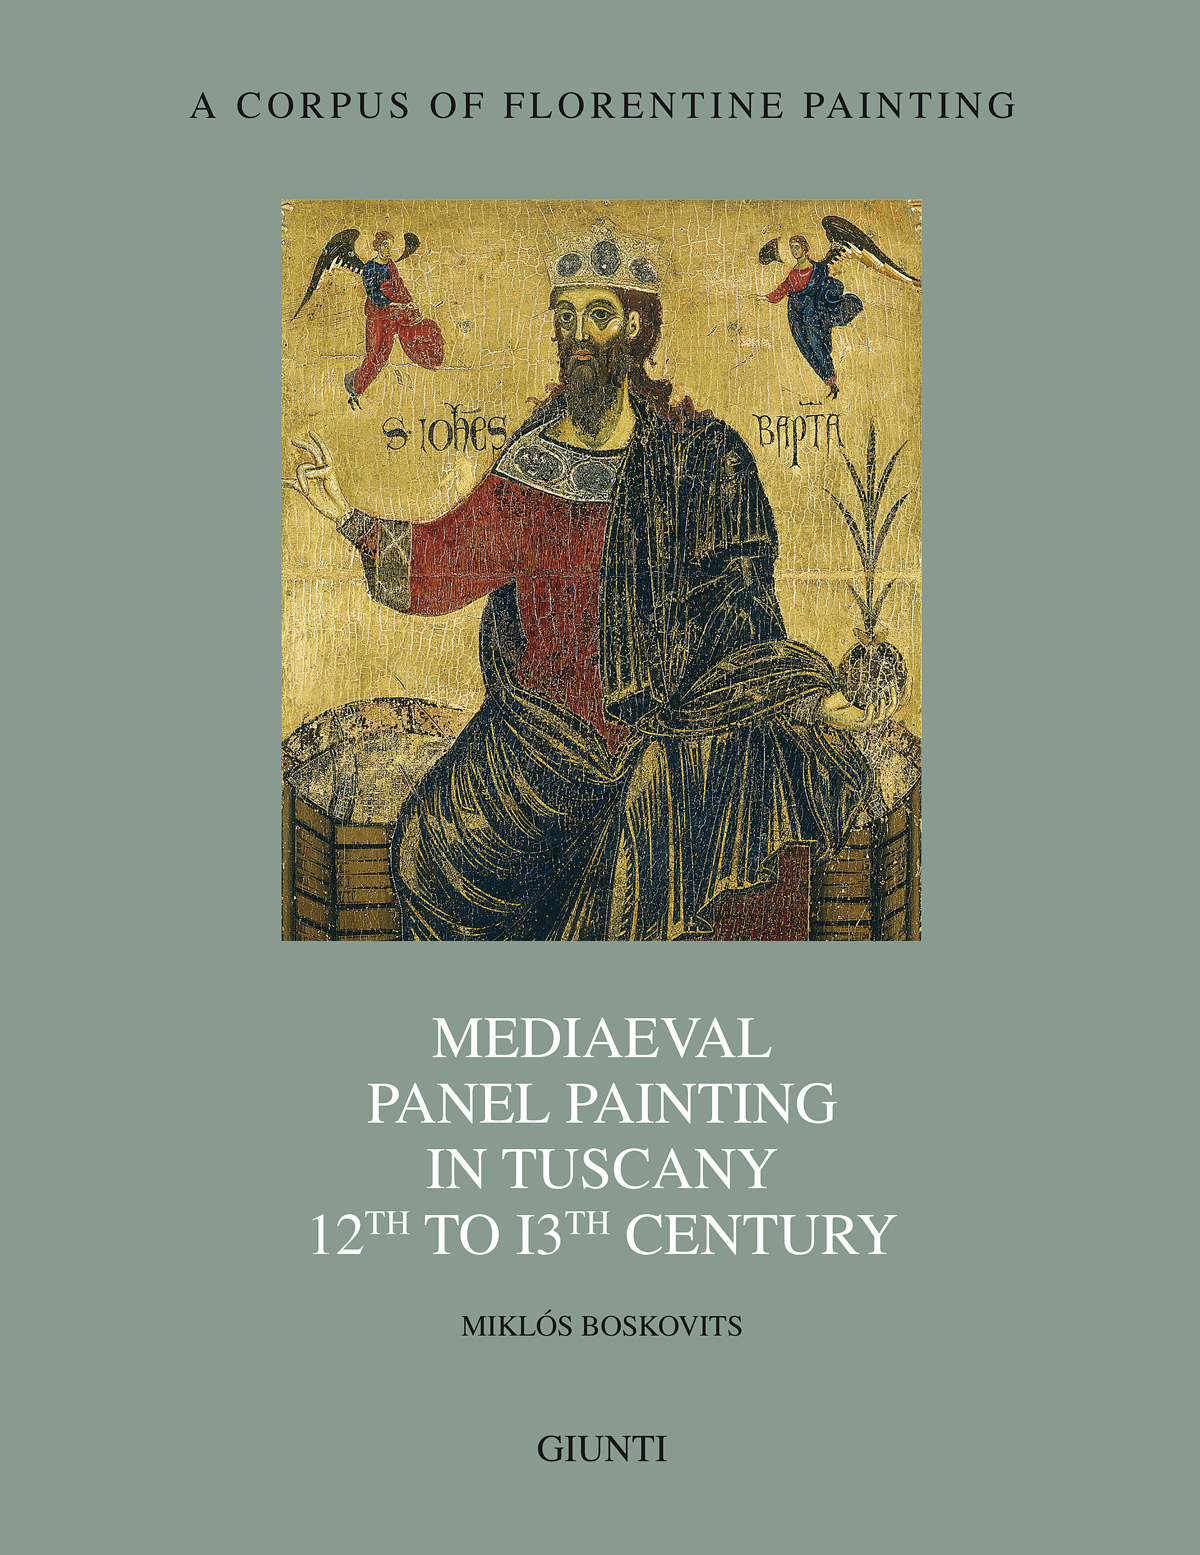 Mediaeval Panel Painting in Tuscany 12th to 13th Century